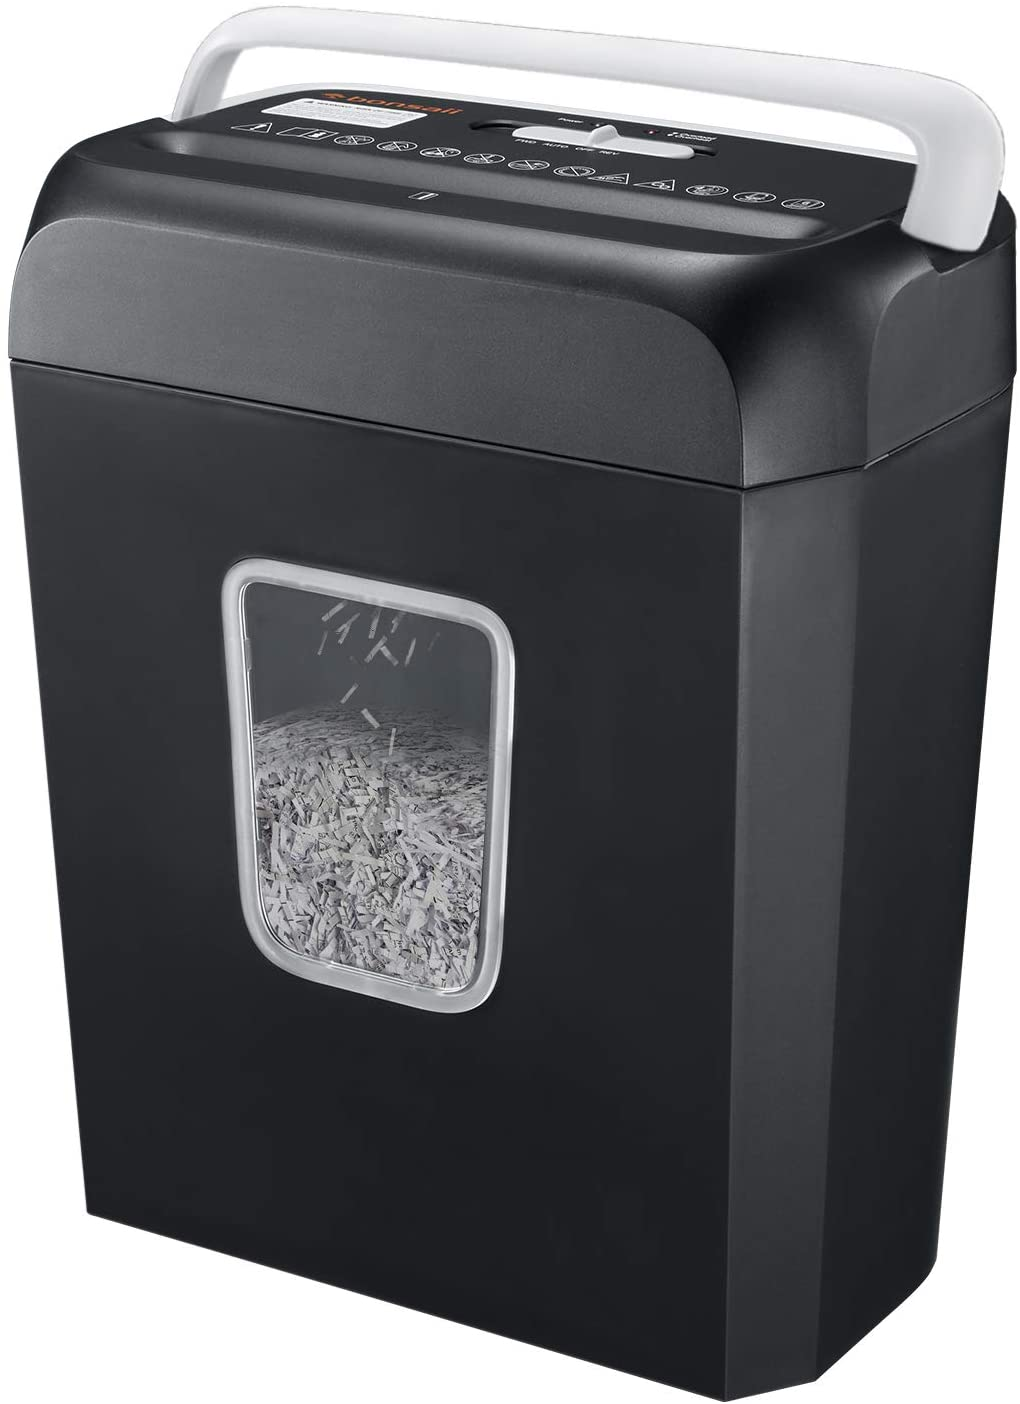 Shredder for Home, Bonsaii 6 Sheet Cross Cut Paper Shredder for Small Home Office Use, Portable Handle Design with 3.4 Gallons Wastebasket (C237-B)